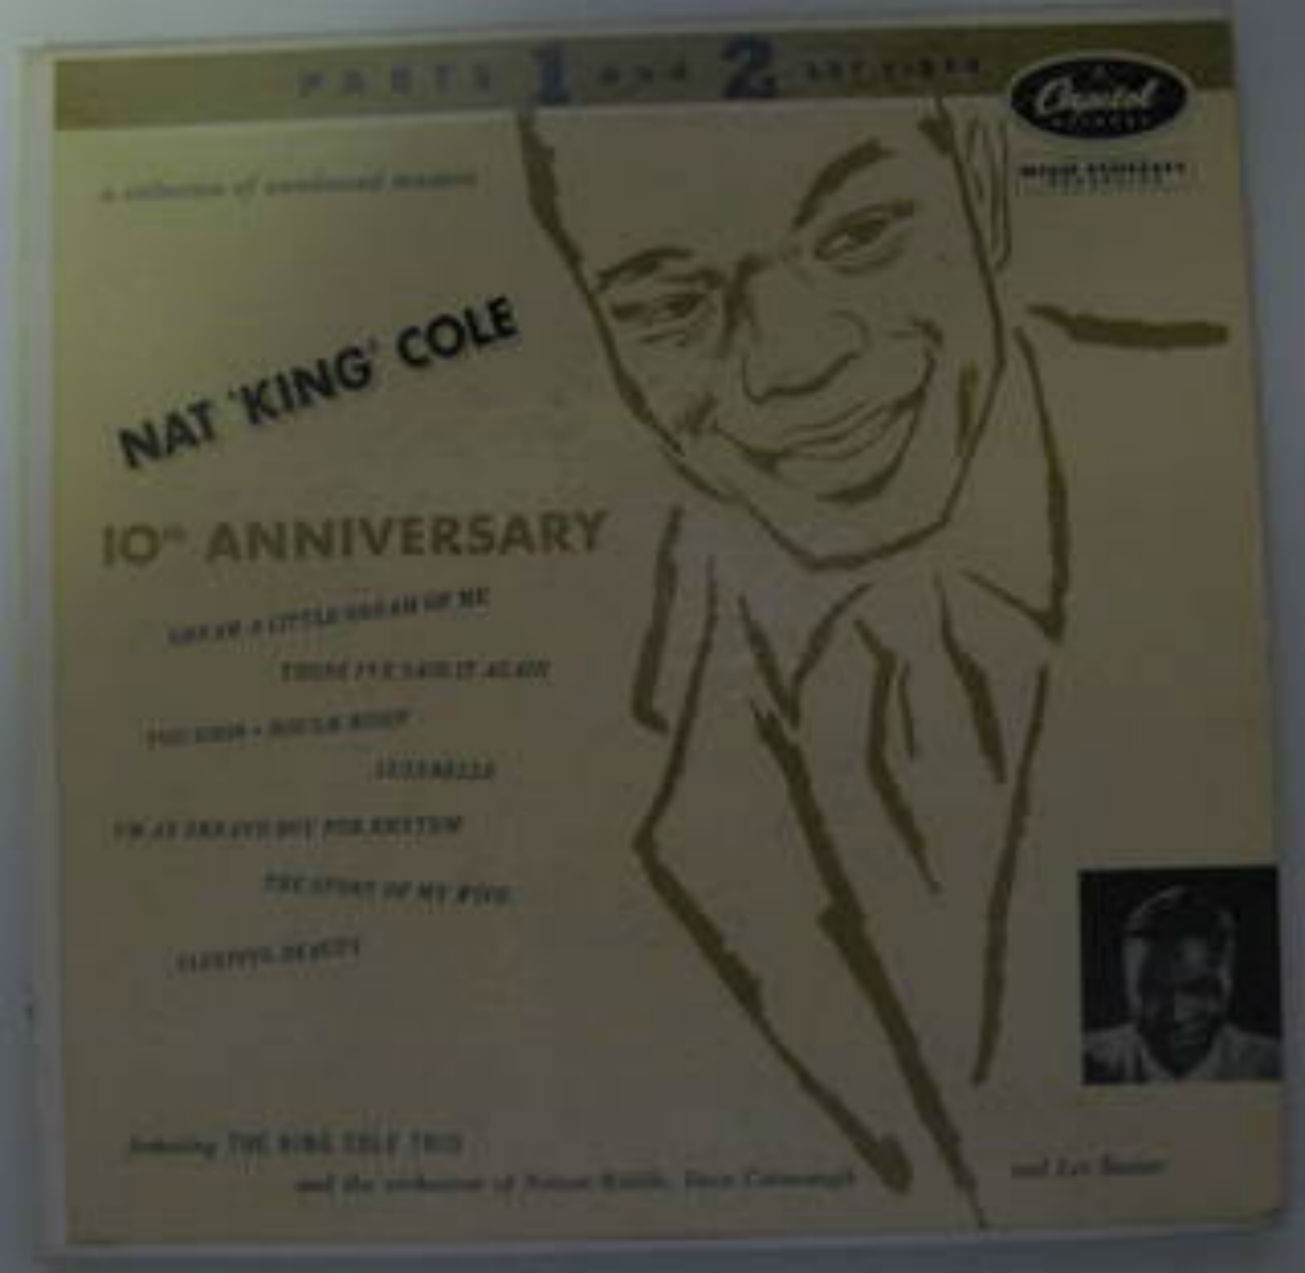 Nat 'King' Cole / 10th Anniversary EP Parts 1 And 2